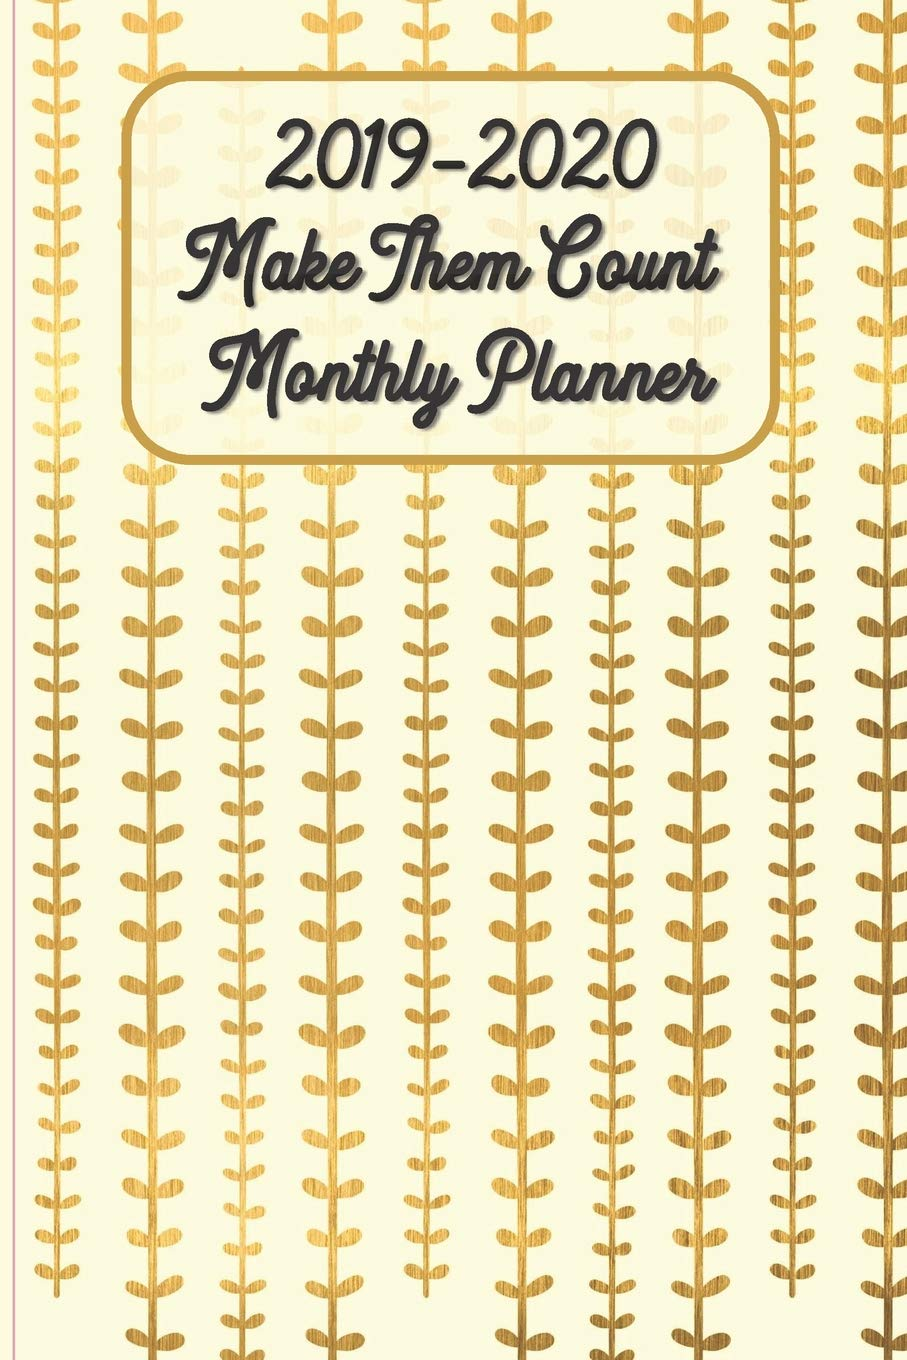 Amazon.com: 2019-2020 Make Them Count Monthly Planner ...